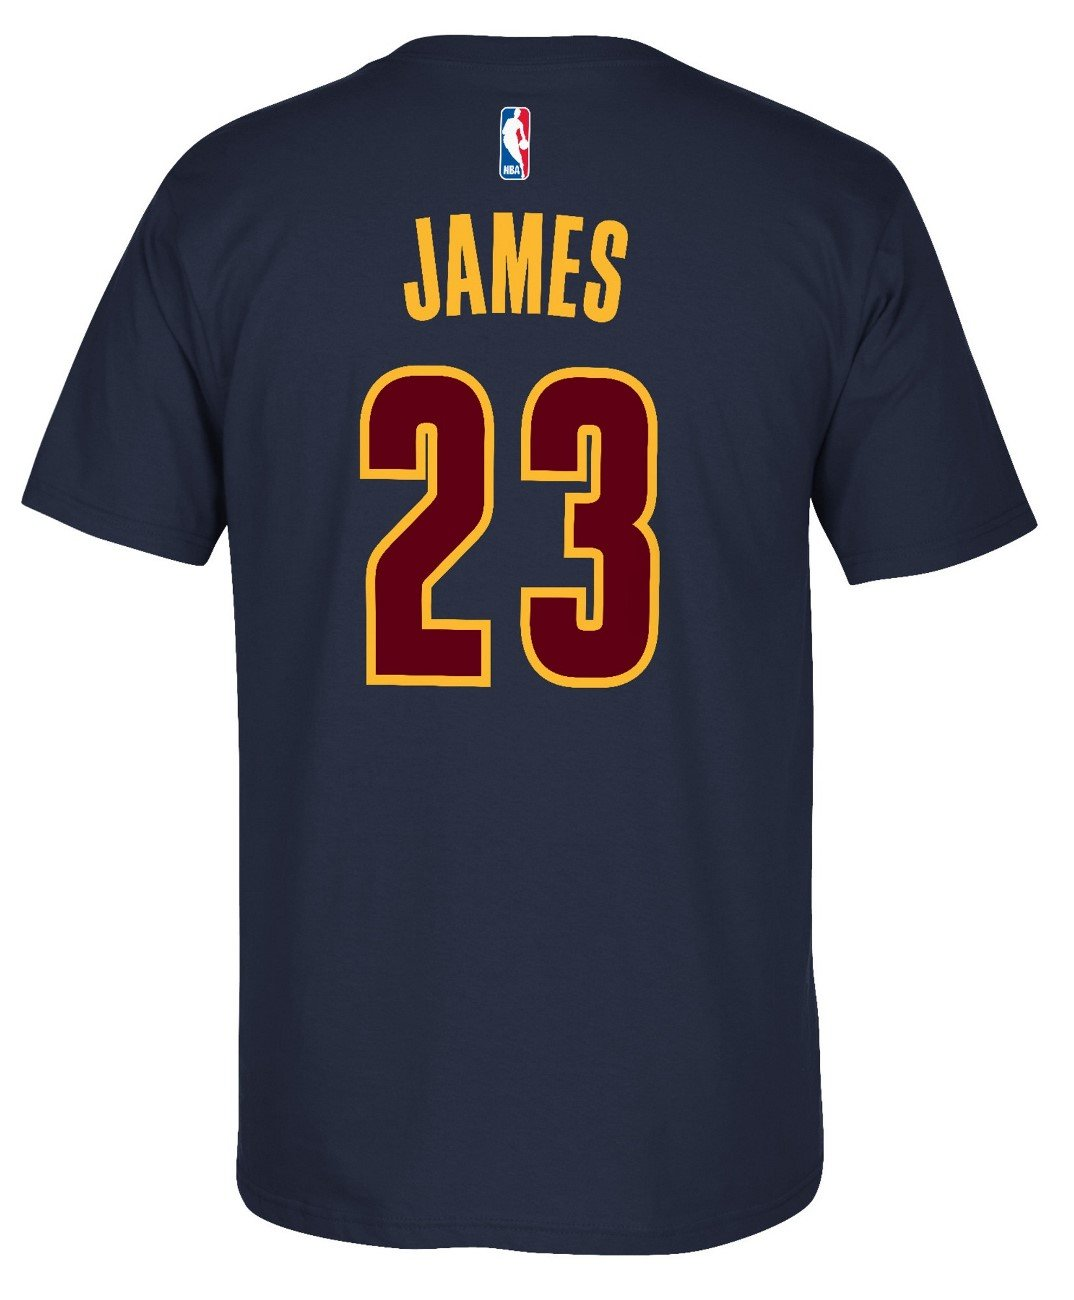 Amazon.com : Cleveland Cavaliers Lebron James Adidas Finals Champions Navy T Shirt (Small) : Sports & Outdoors